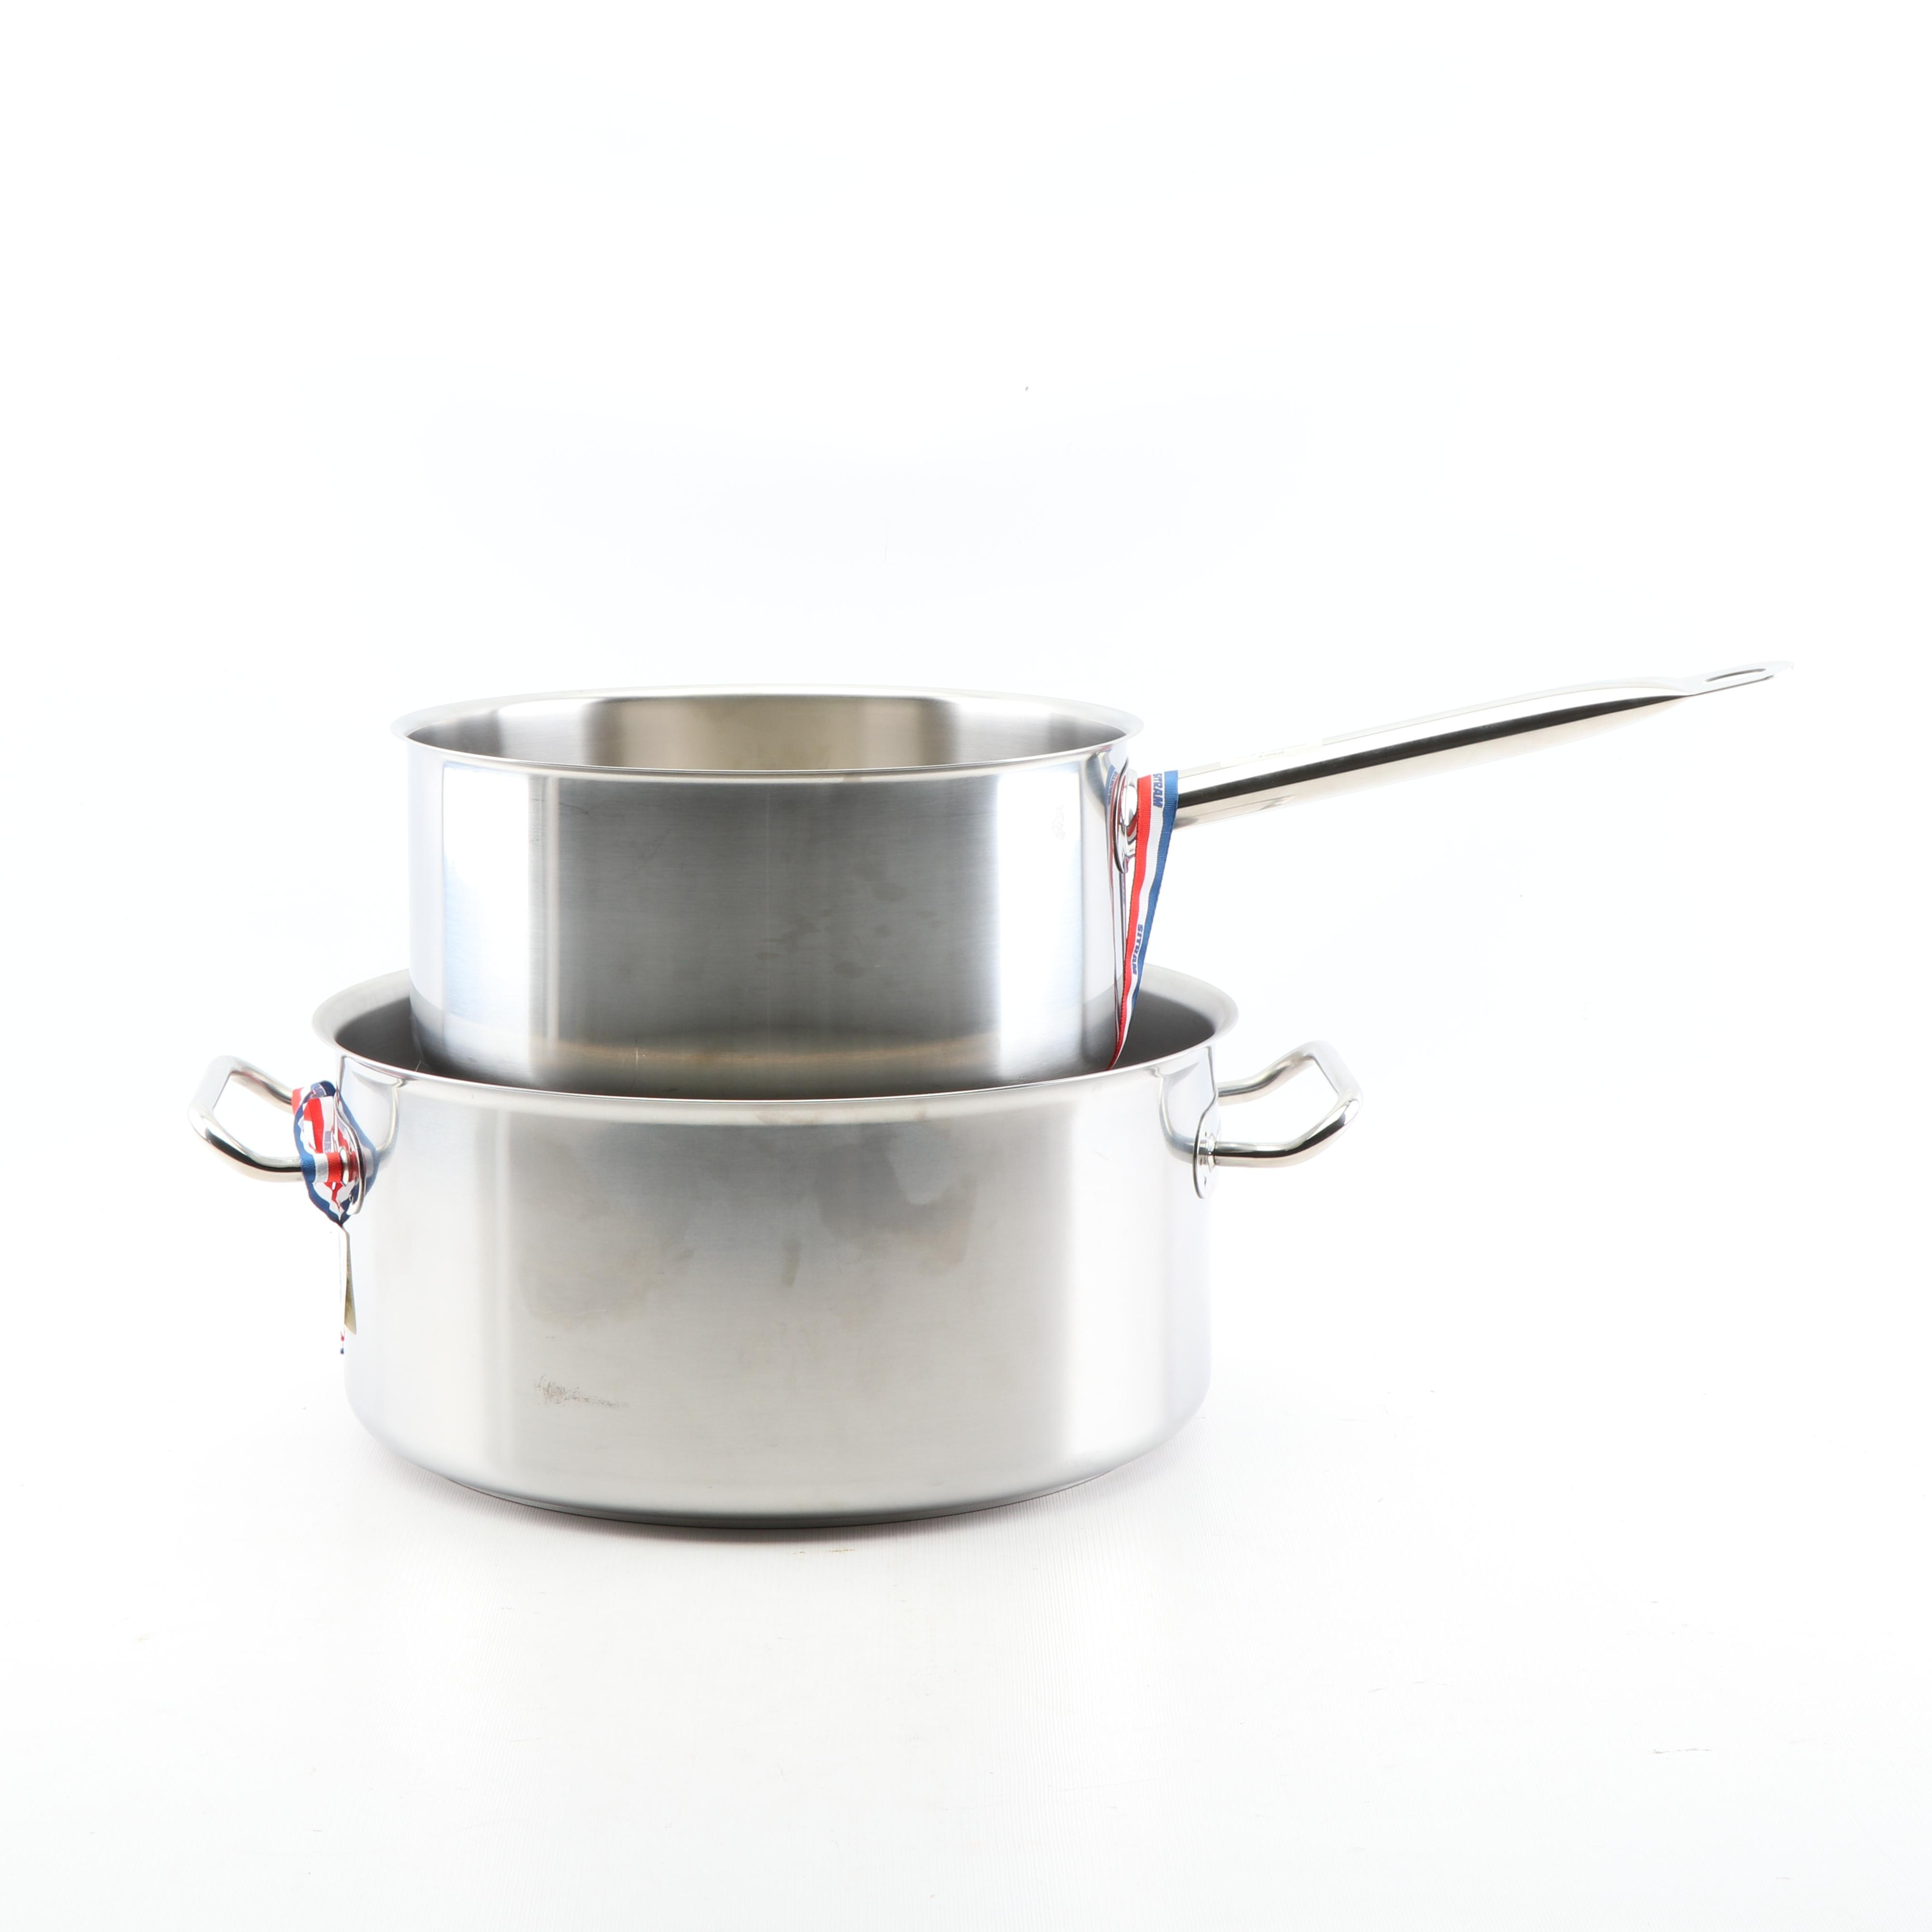 Sitram Stainless Steel Sauce Pan and Stockpot